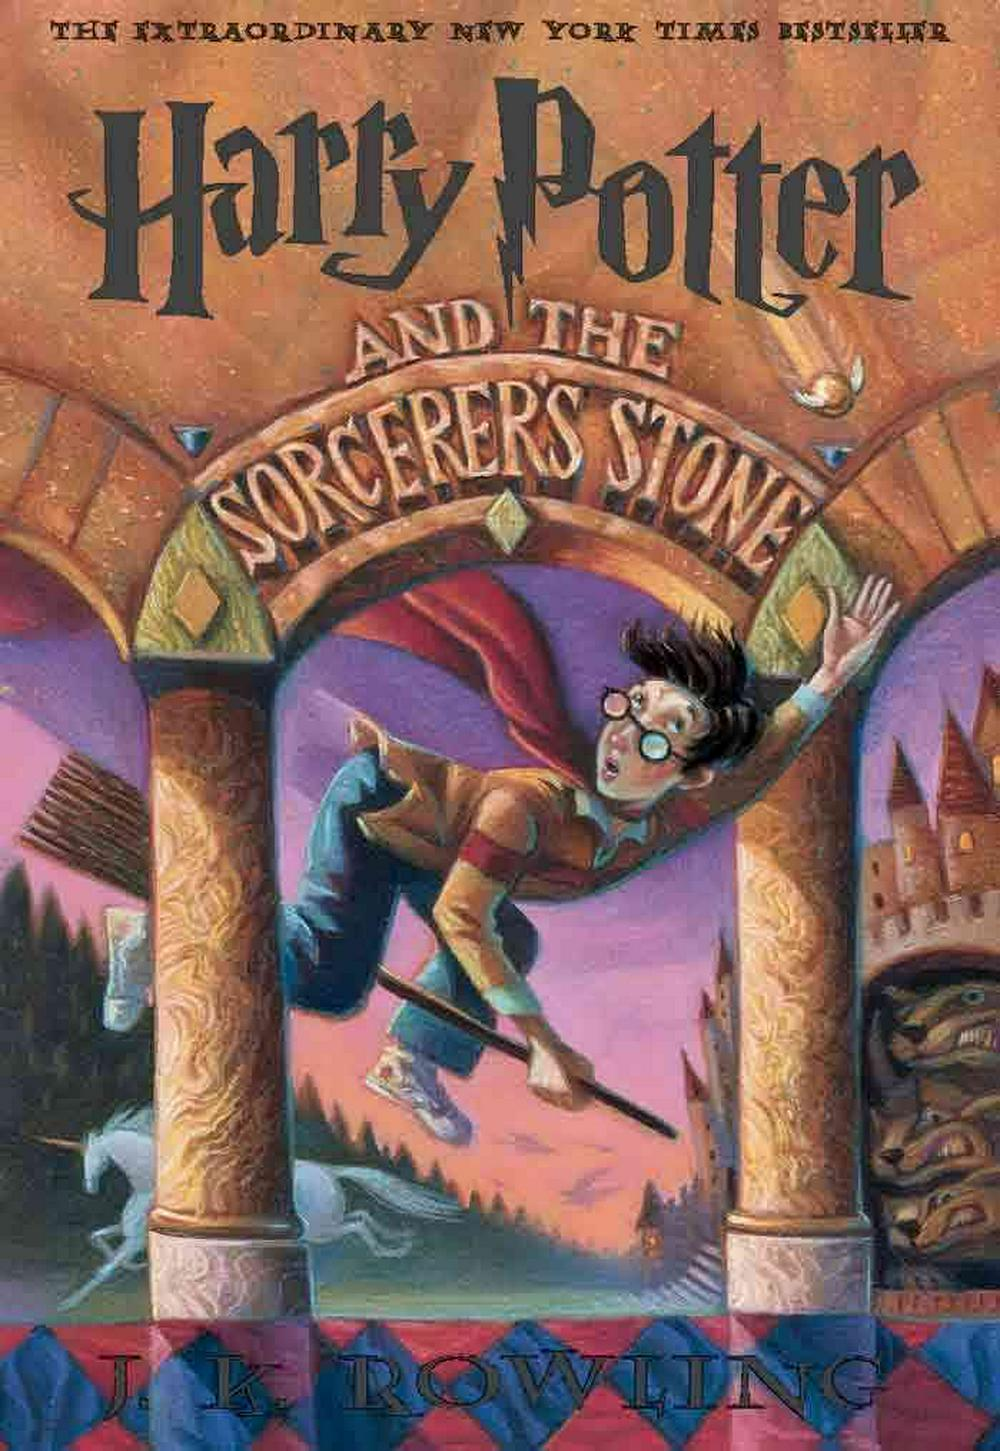 Cover Art for Harry Potter and the Sorcerer's Stone, ISBN: 9780613206334